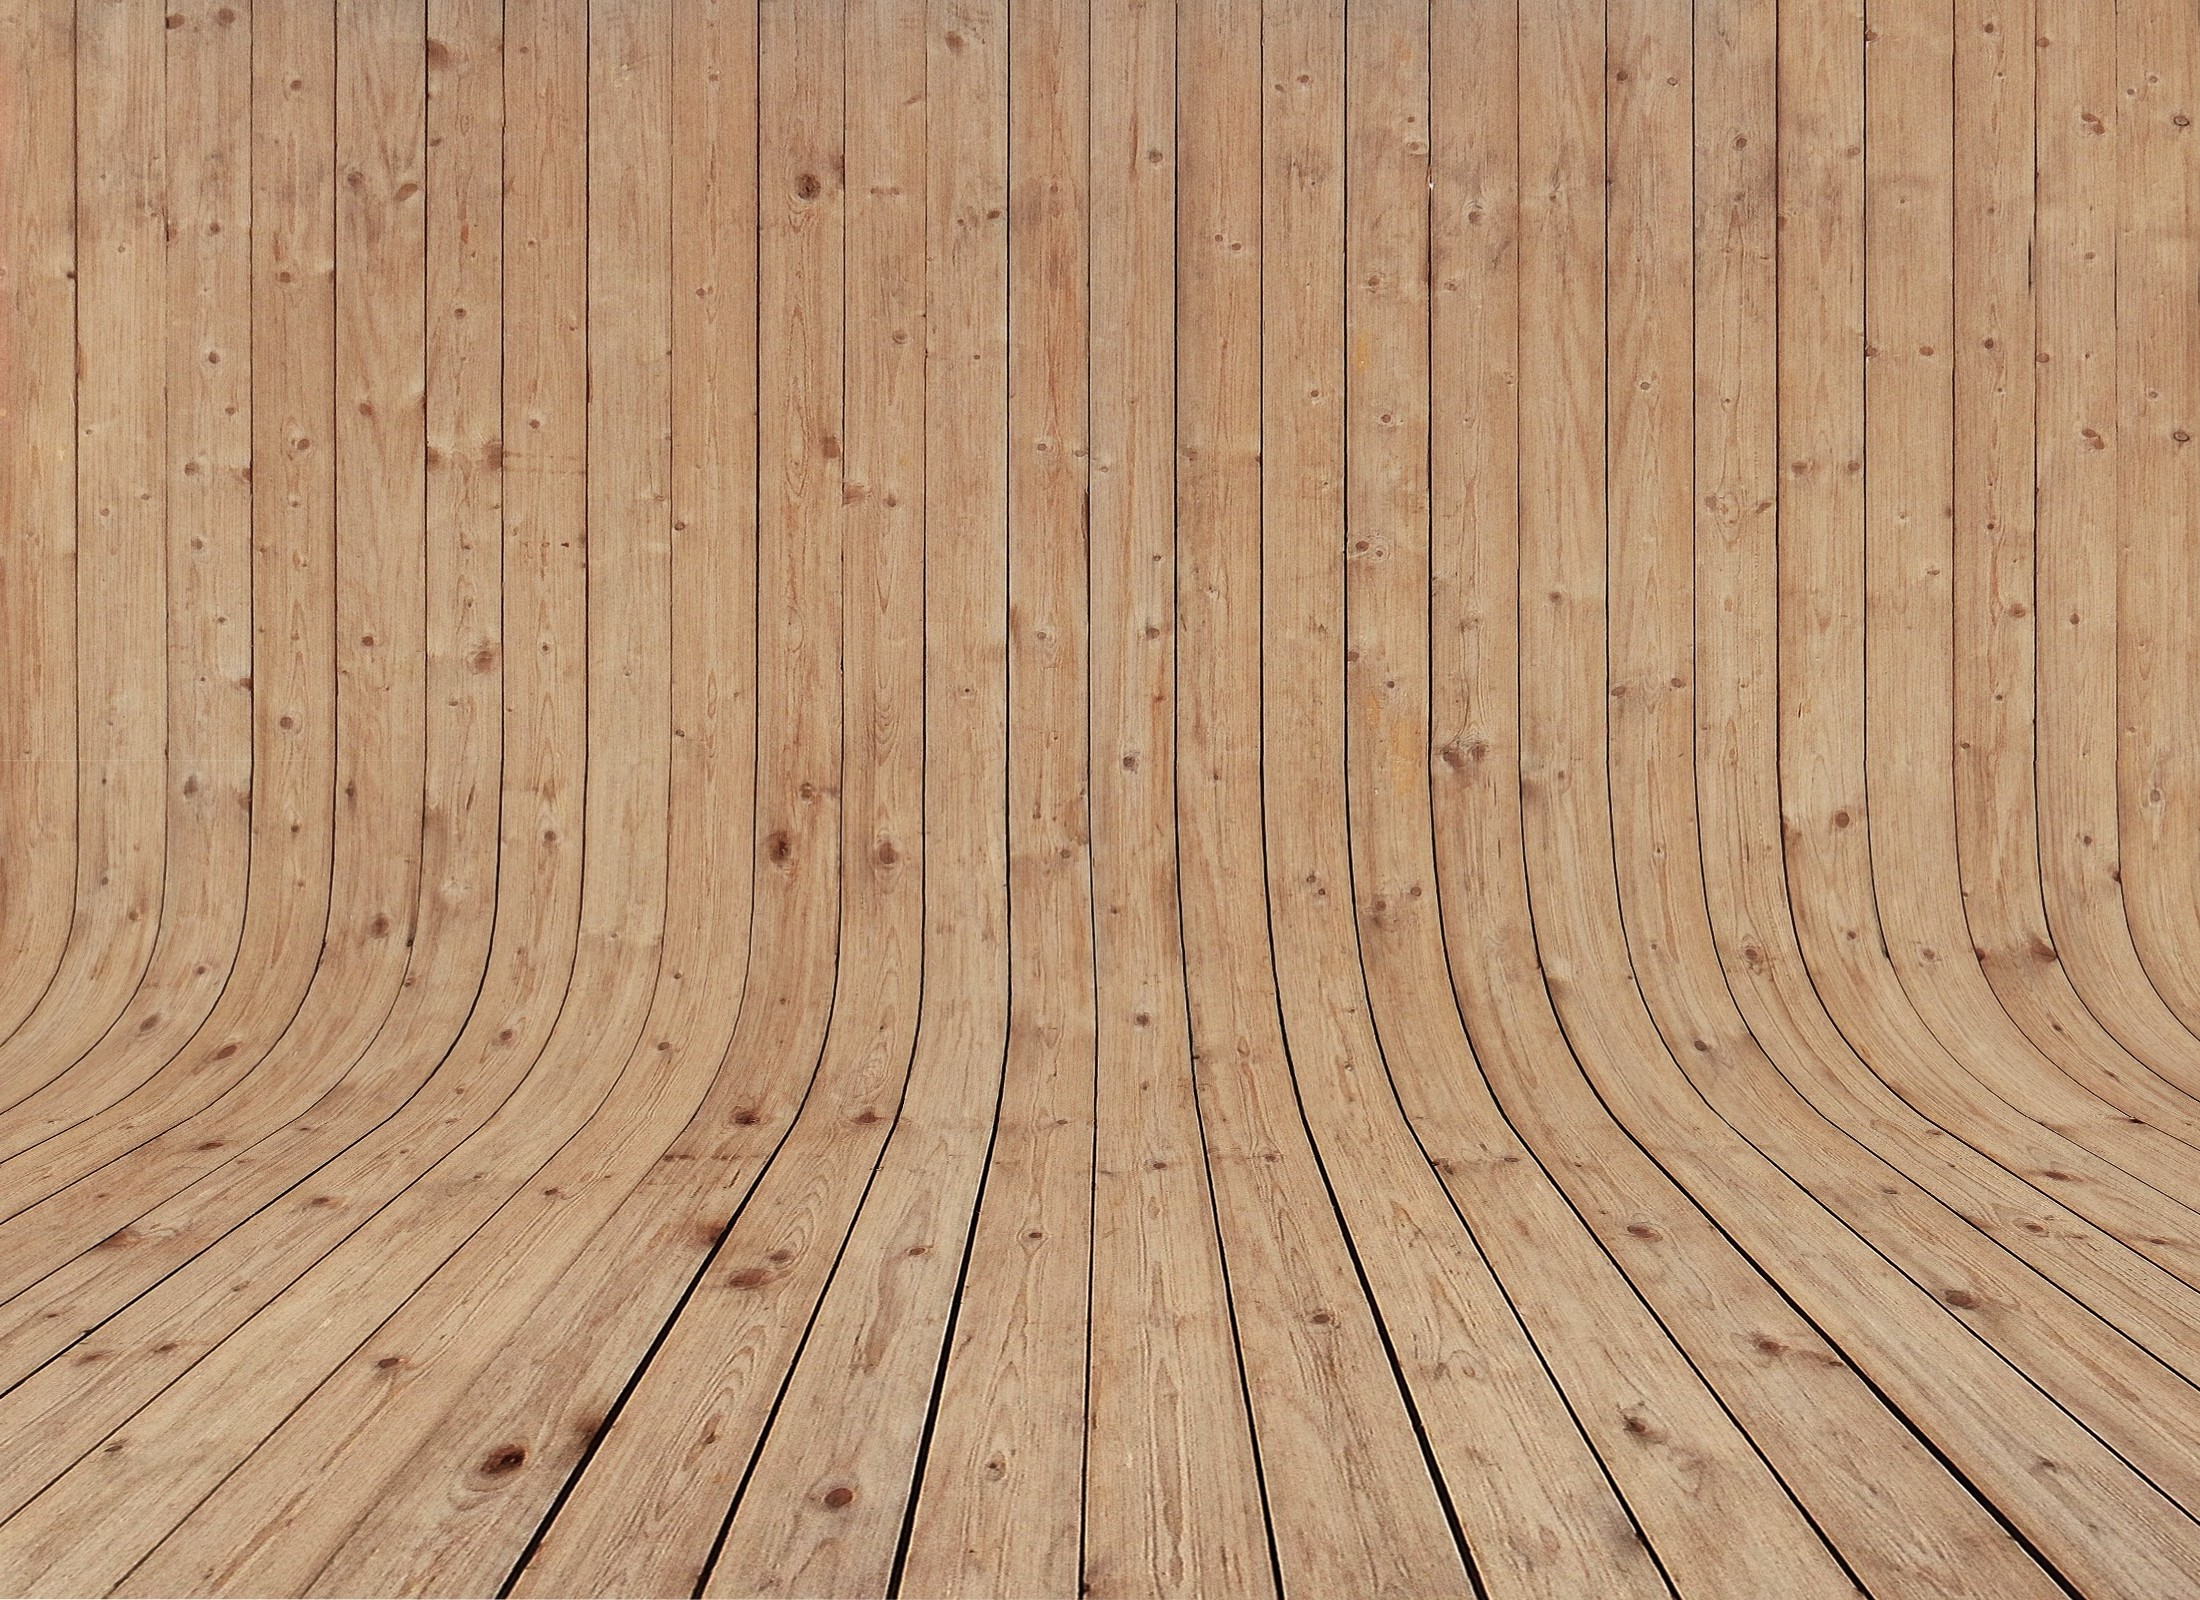 wood, Timber, Closeup, Wooden Surface, Texture, Curved Wood ...